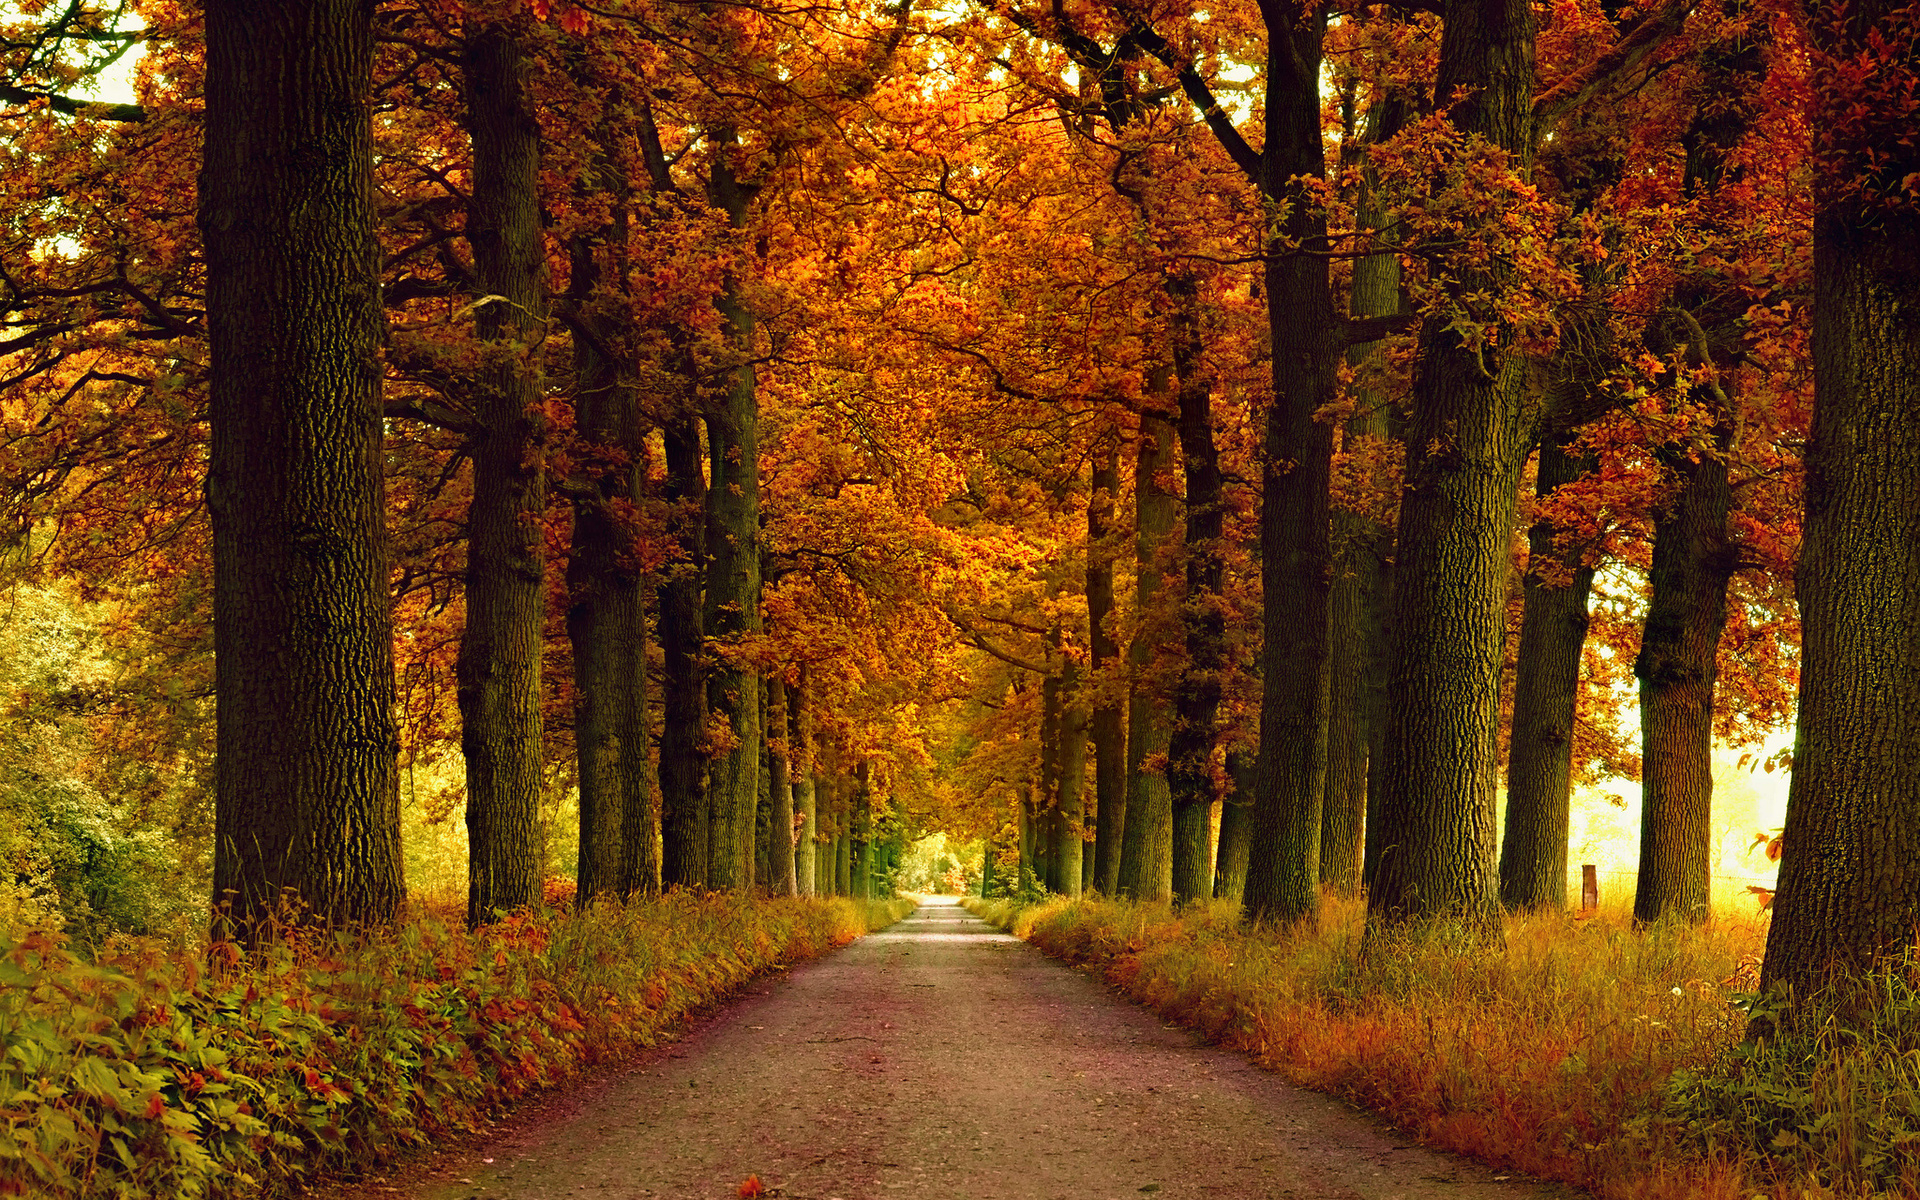 31124 download wallpaper Landscape, Trees, Roads, Autumn screensavers and pictures for free